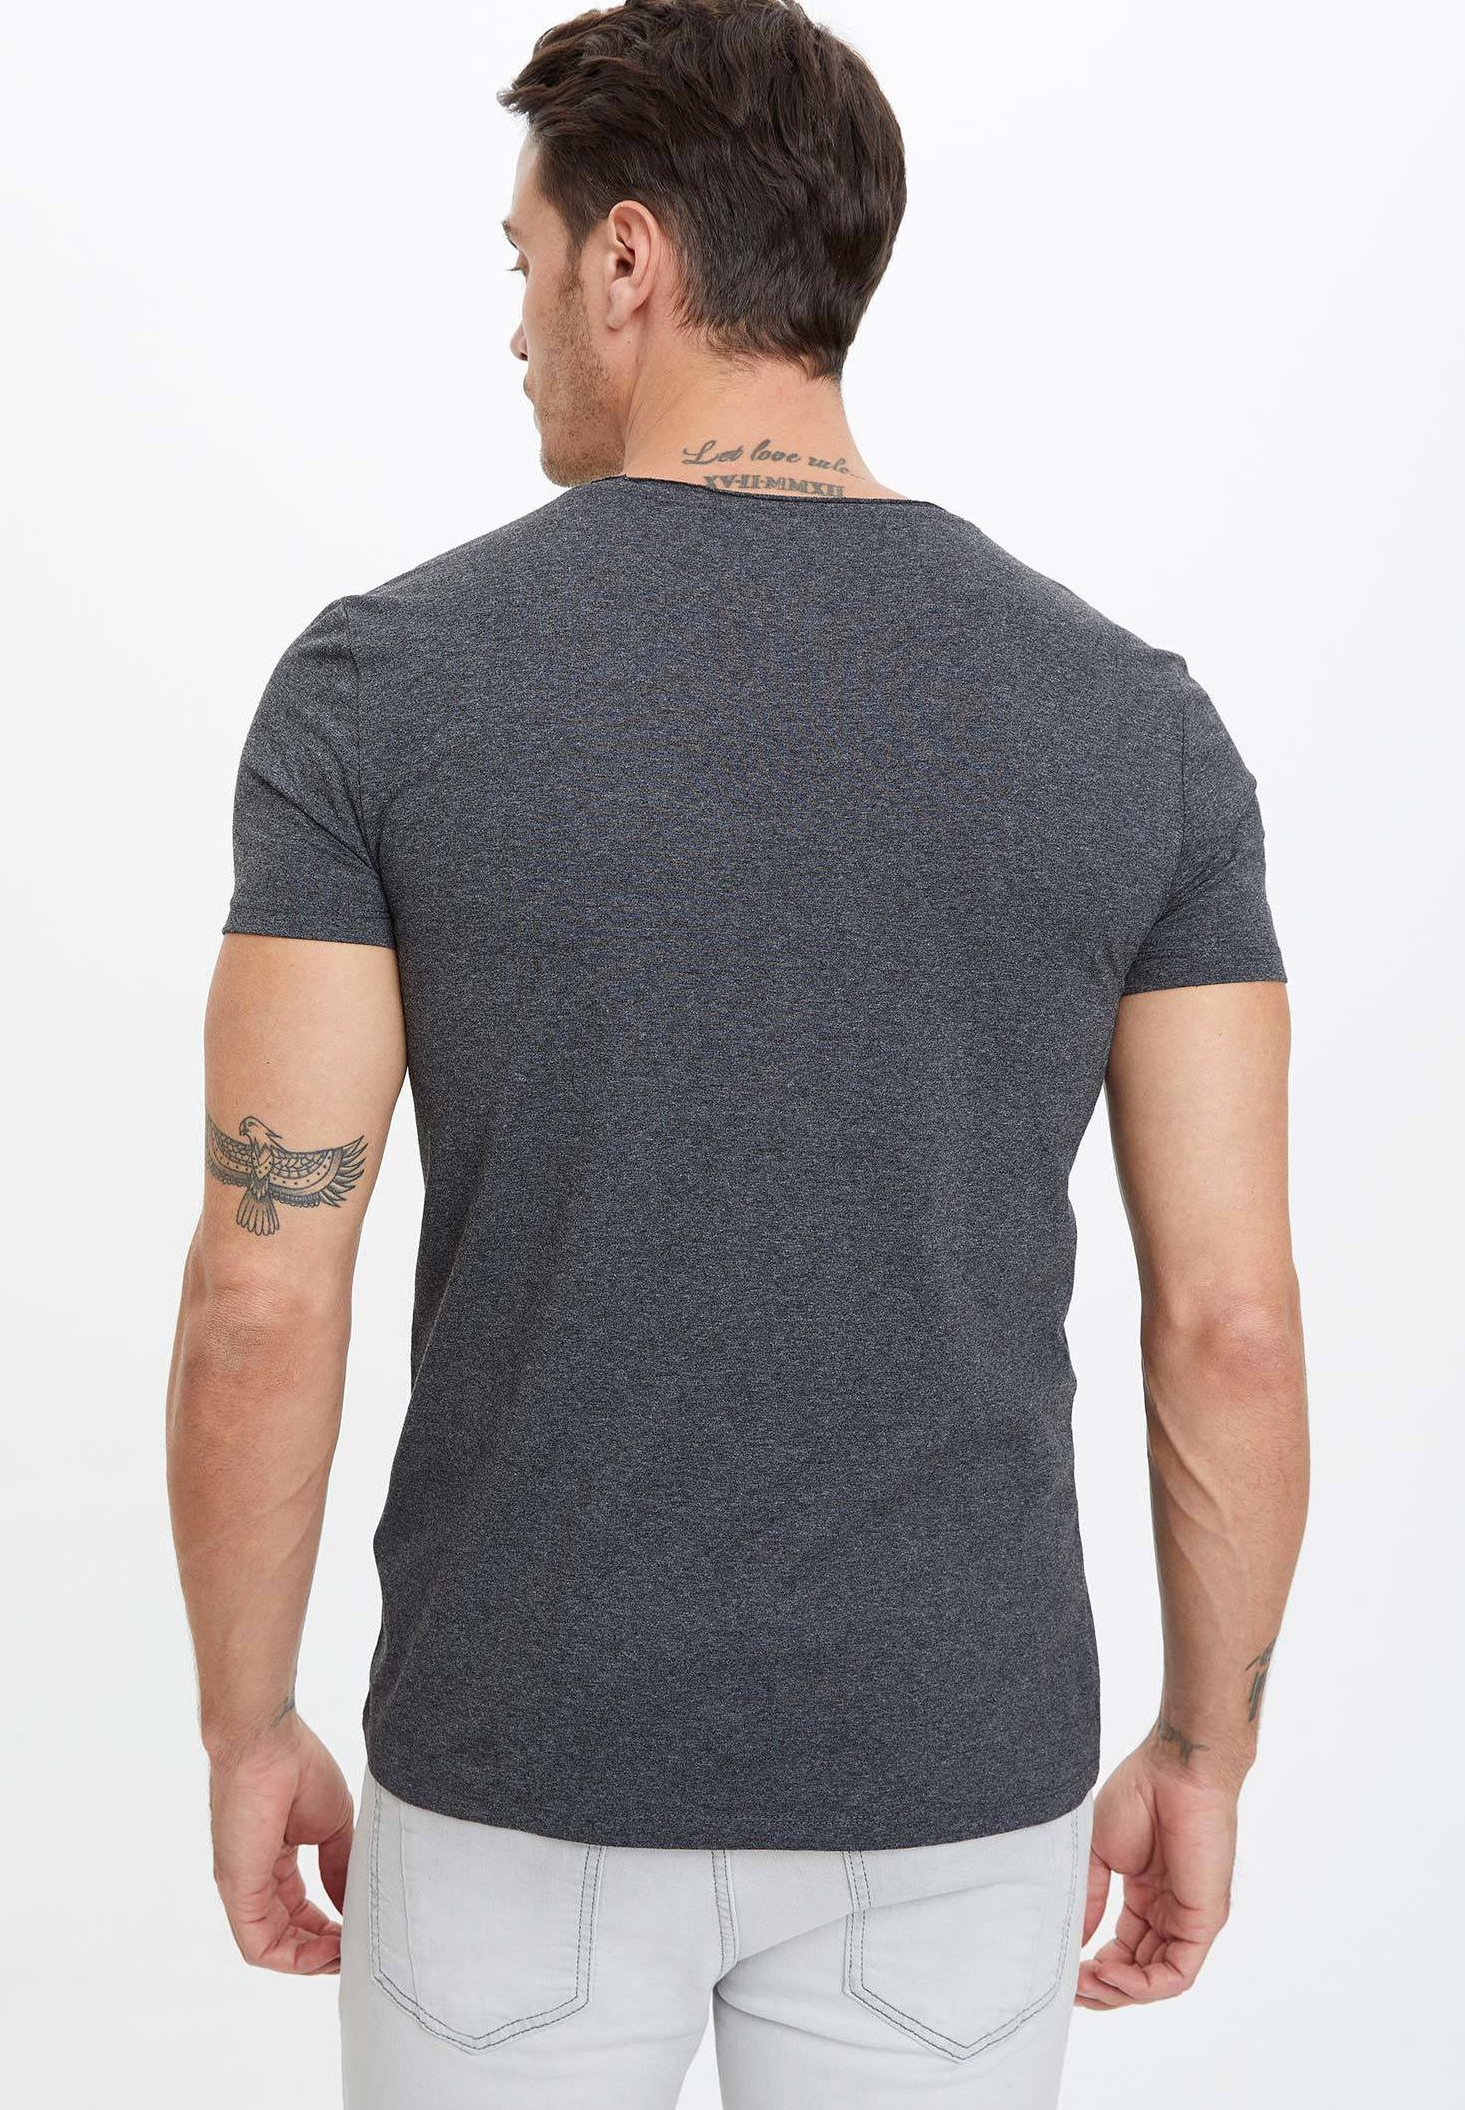 DeFacto Print T-shirt - anthracite 4w8gO